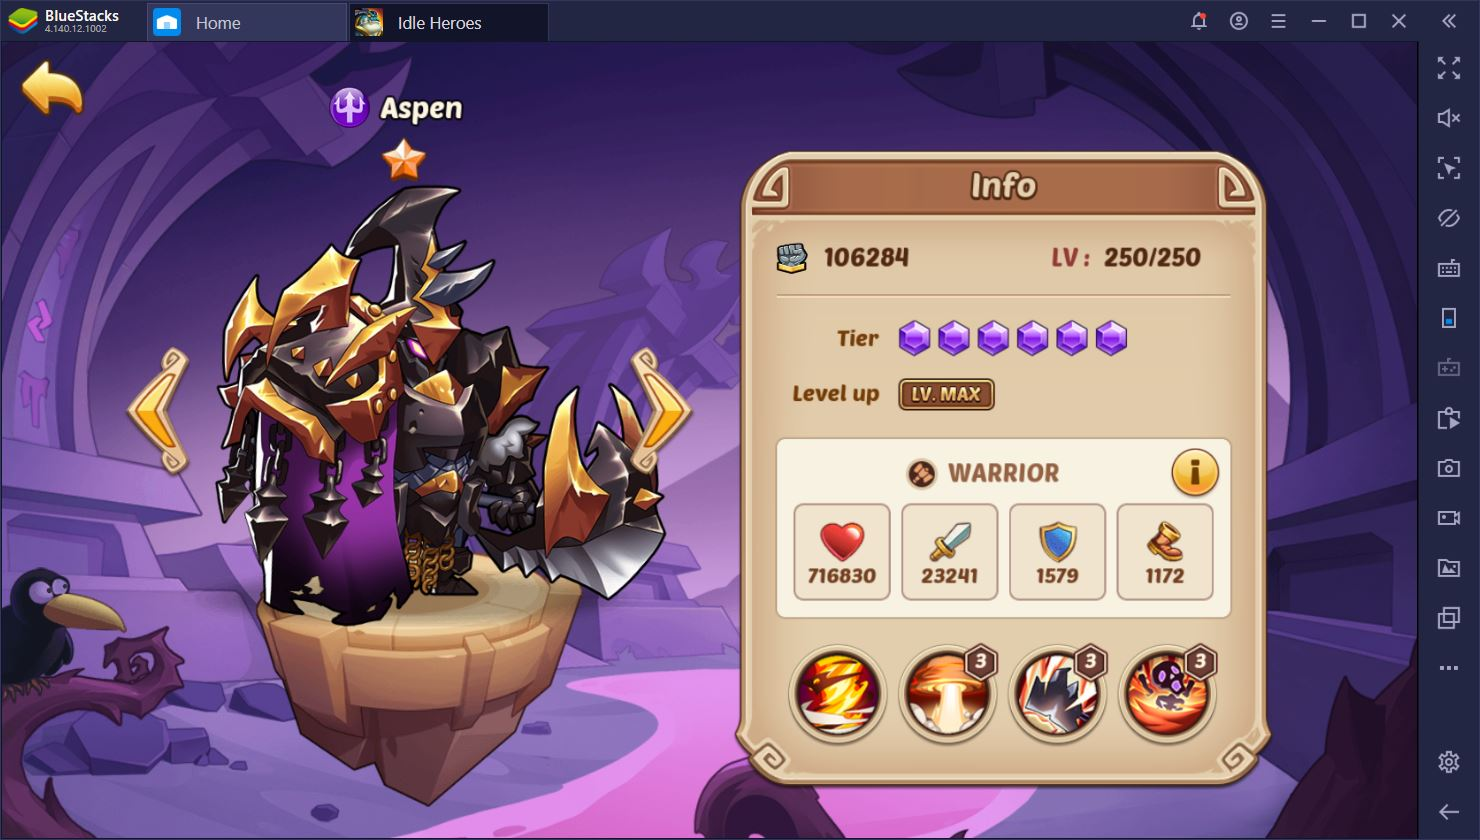 Idle Heroes on PC: The Updated Top 5 Best Heroes List for PvE and PvP